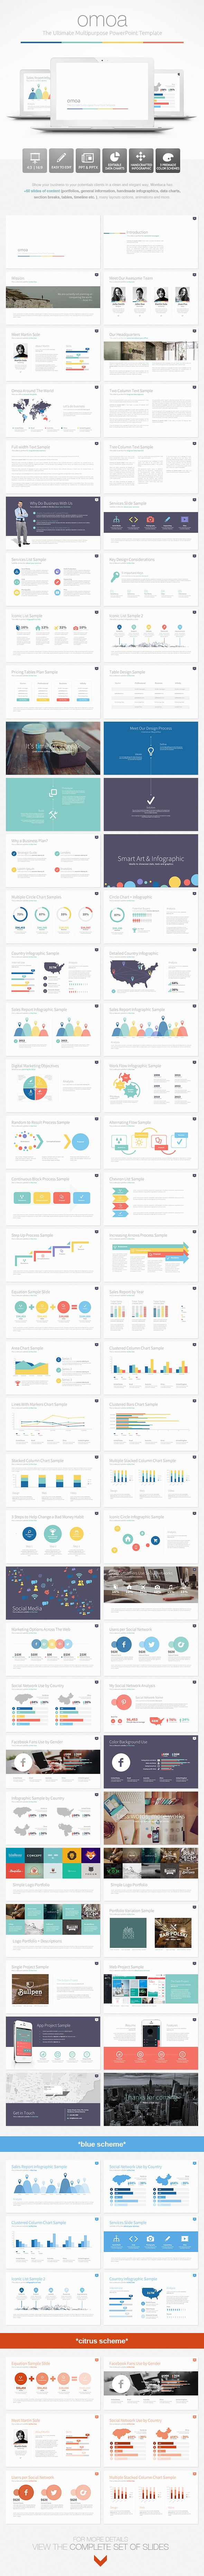 Omoa - Ultimate Multipurpose PowerPoint Template - PowerPoint Templates Presentation Templates